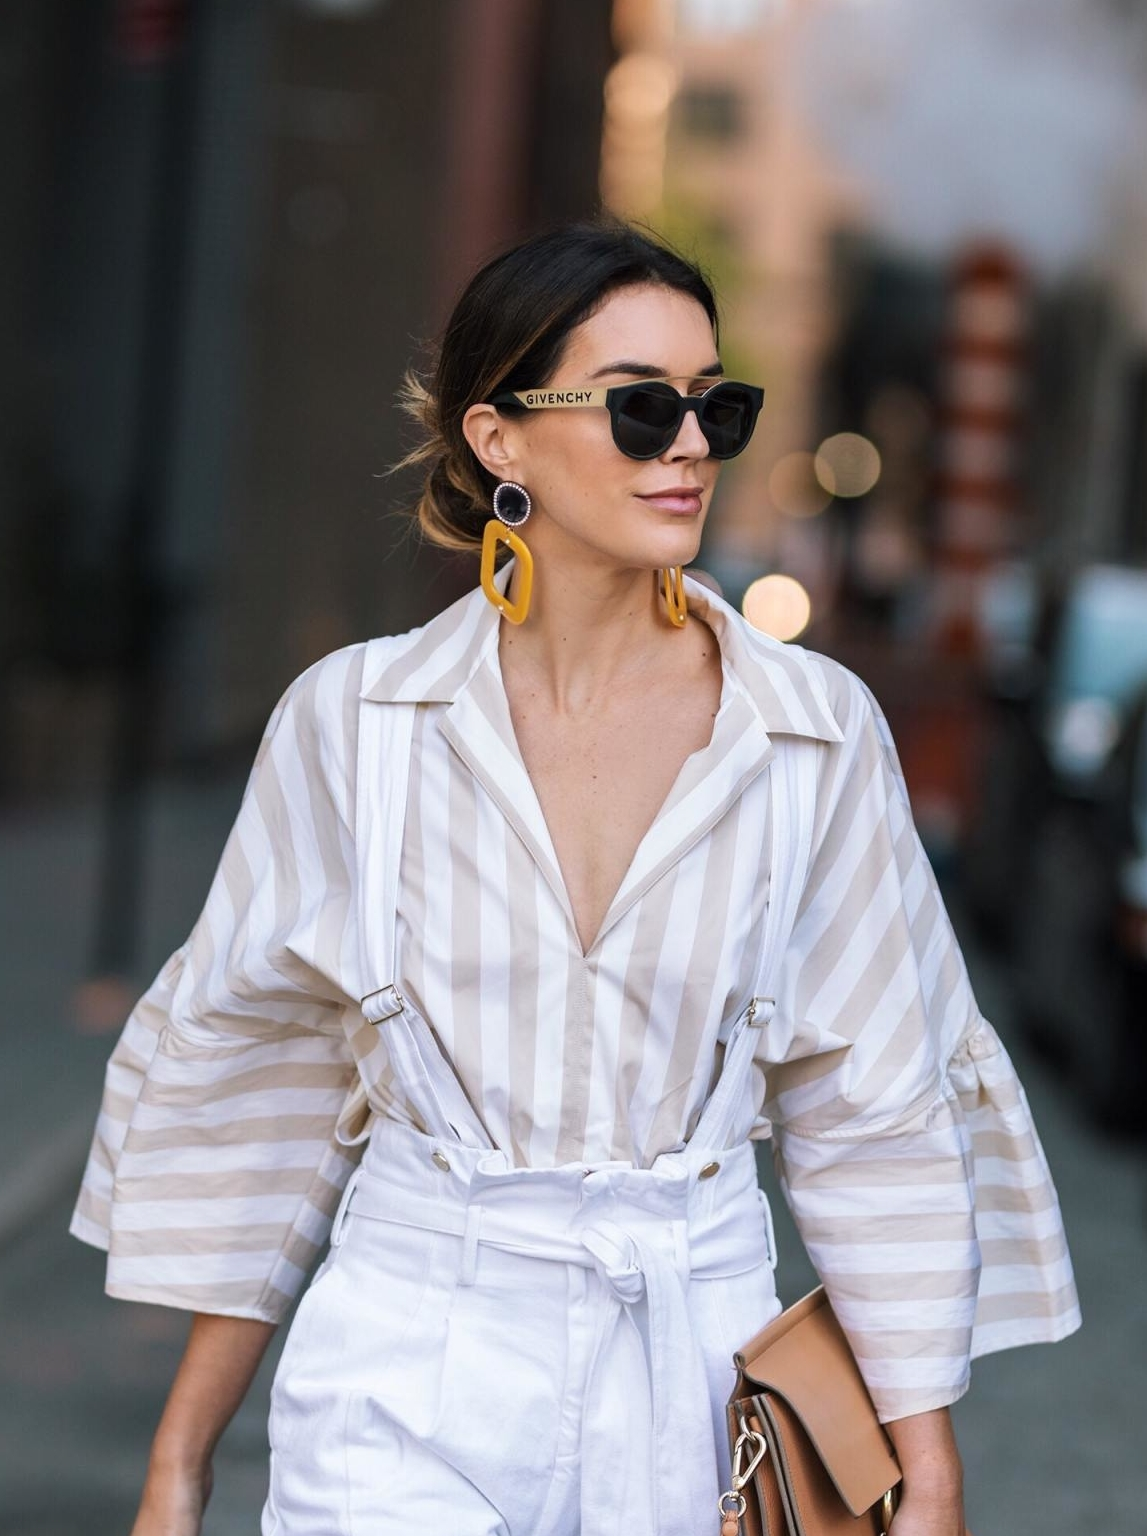 THE IT PRINT EVERY FASHION GIRL CAN RELY ON